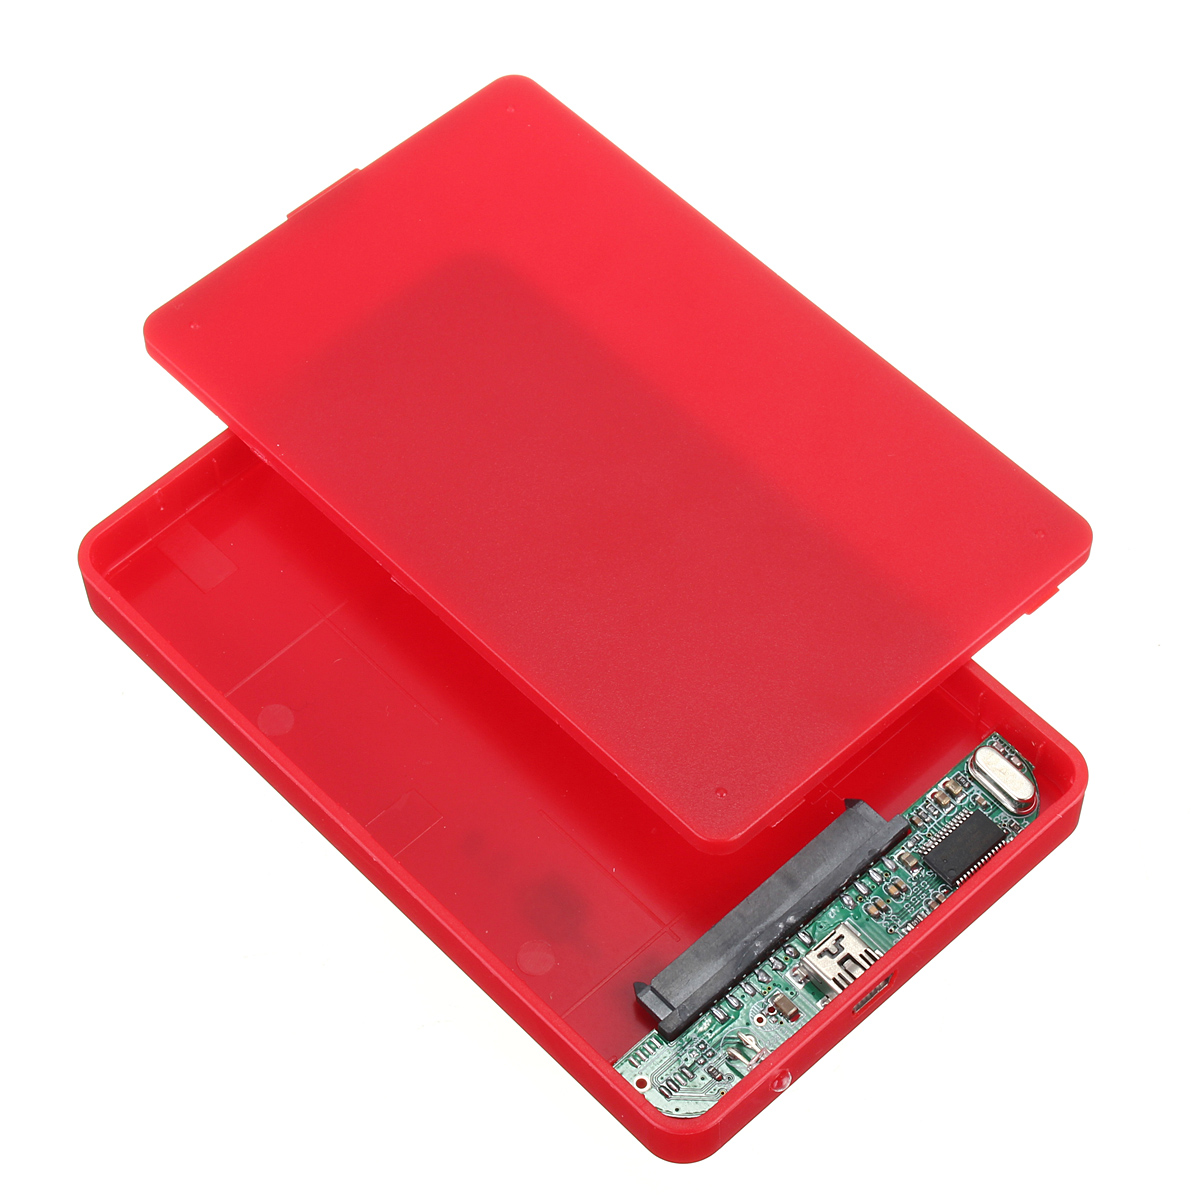 ... HDD Hard Disk USB 2.0 Slim Box Case Esterno AdattatoreDrive+Cavo Red